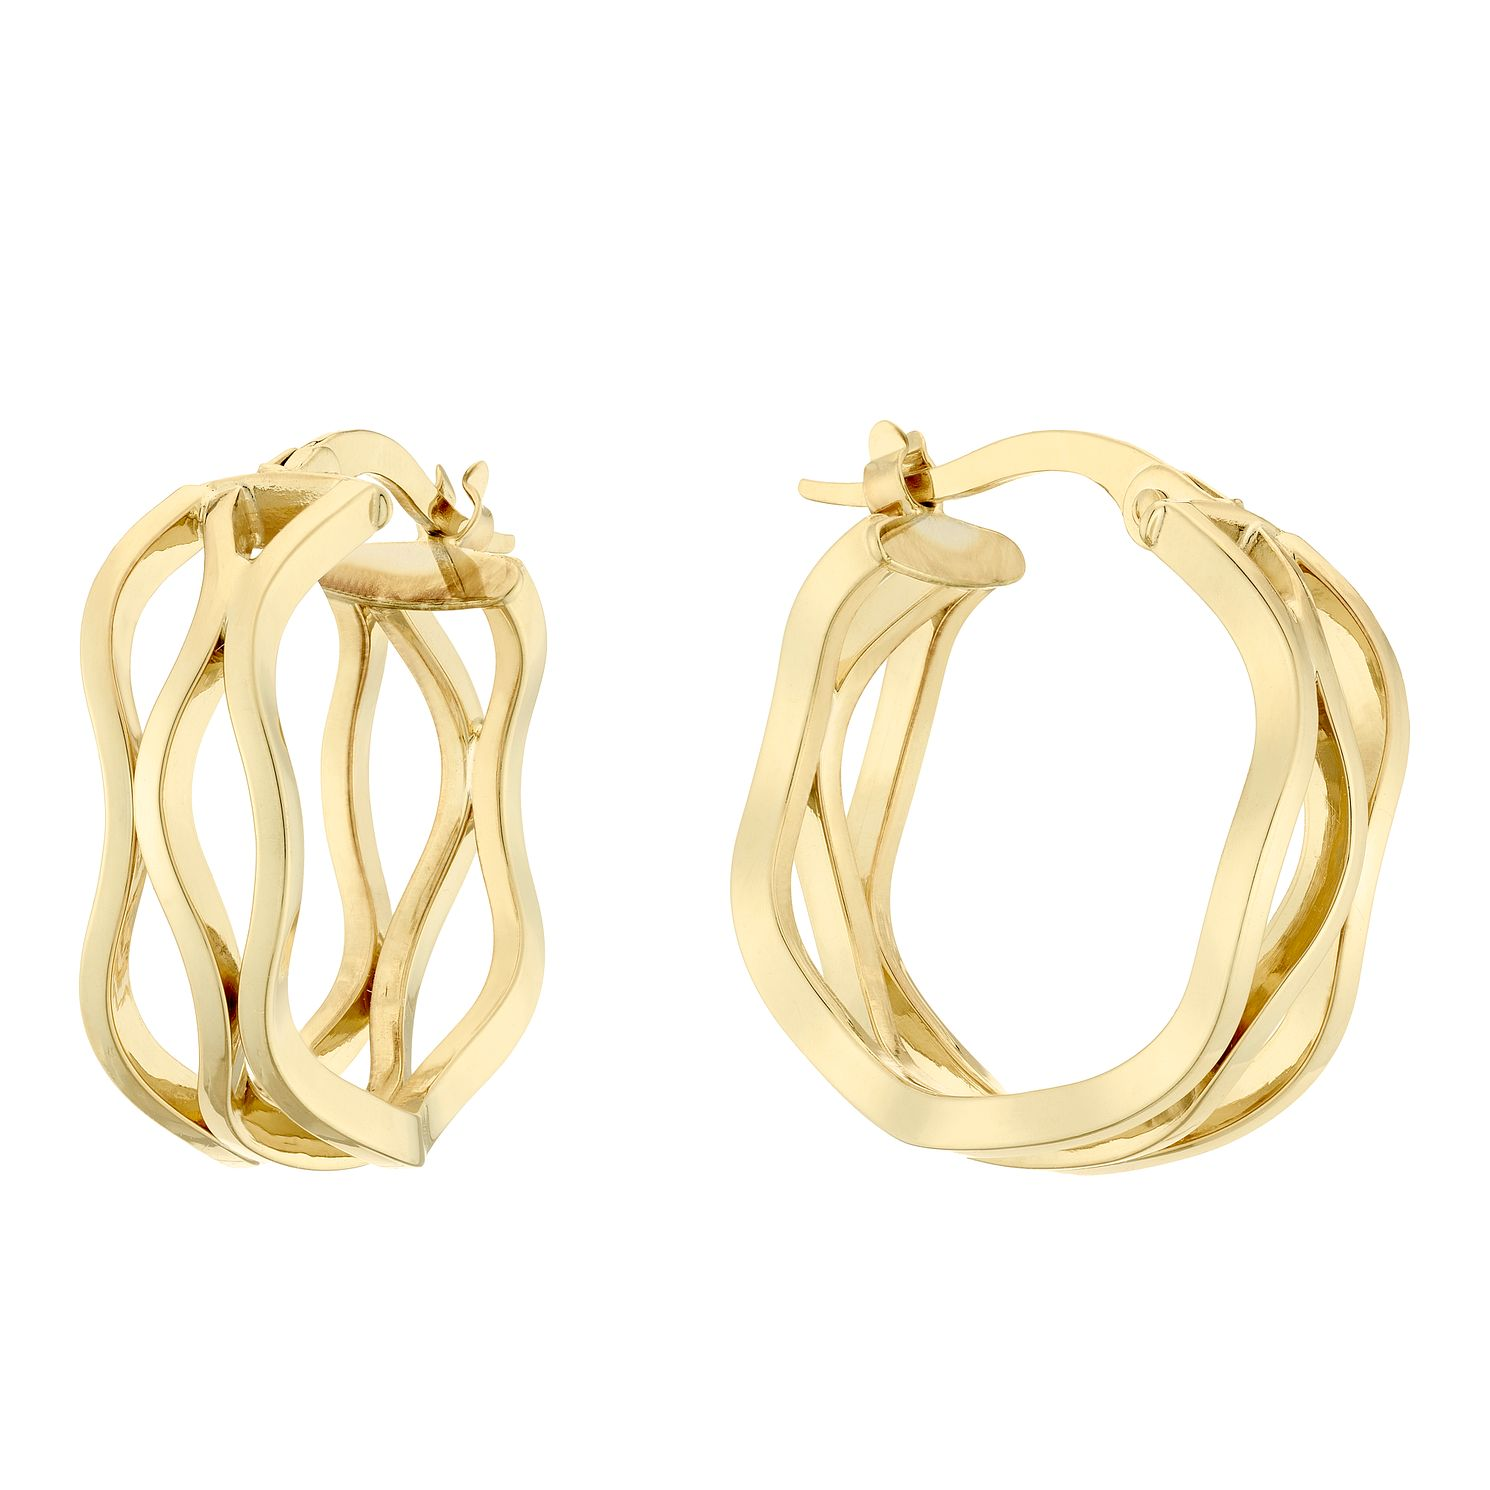 9ct Yellow Gold Triple Wave Hoop Earrings - Product number 4517555